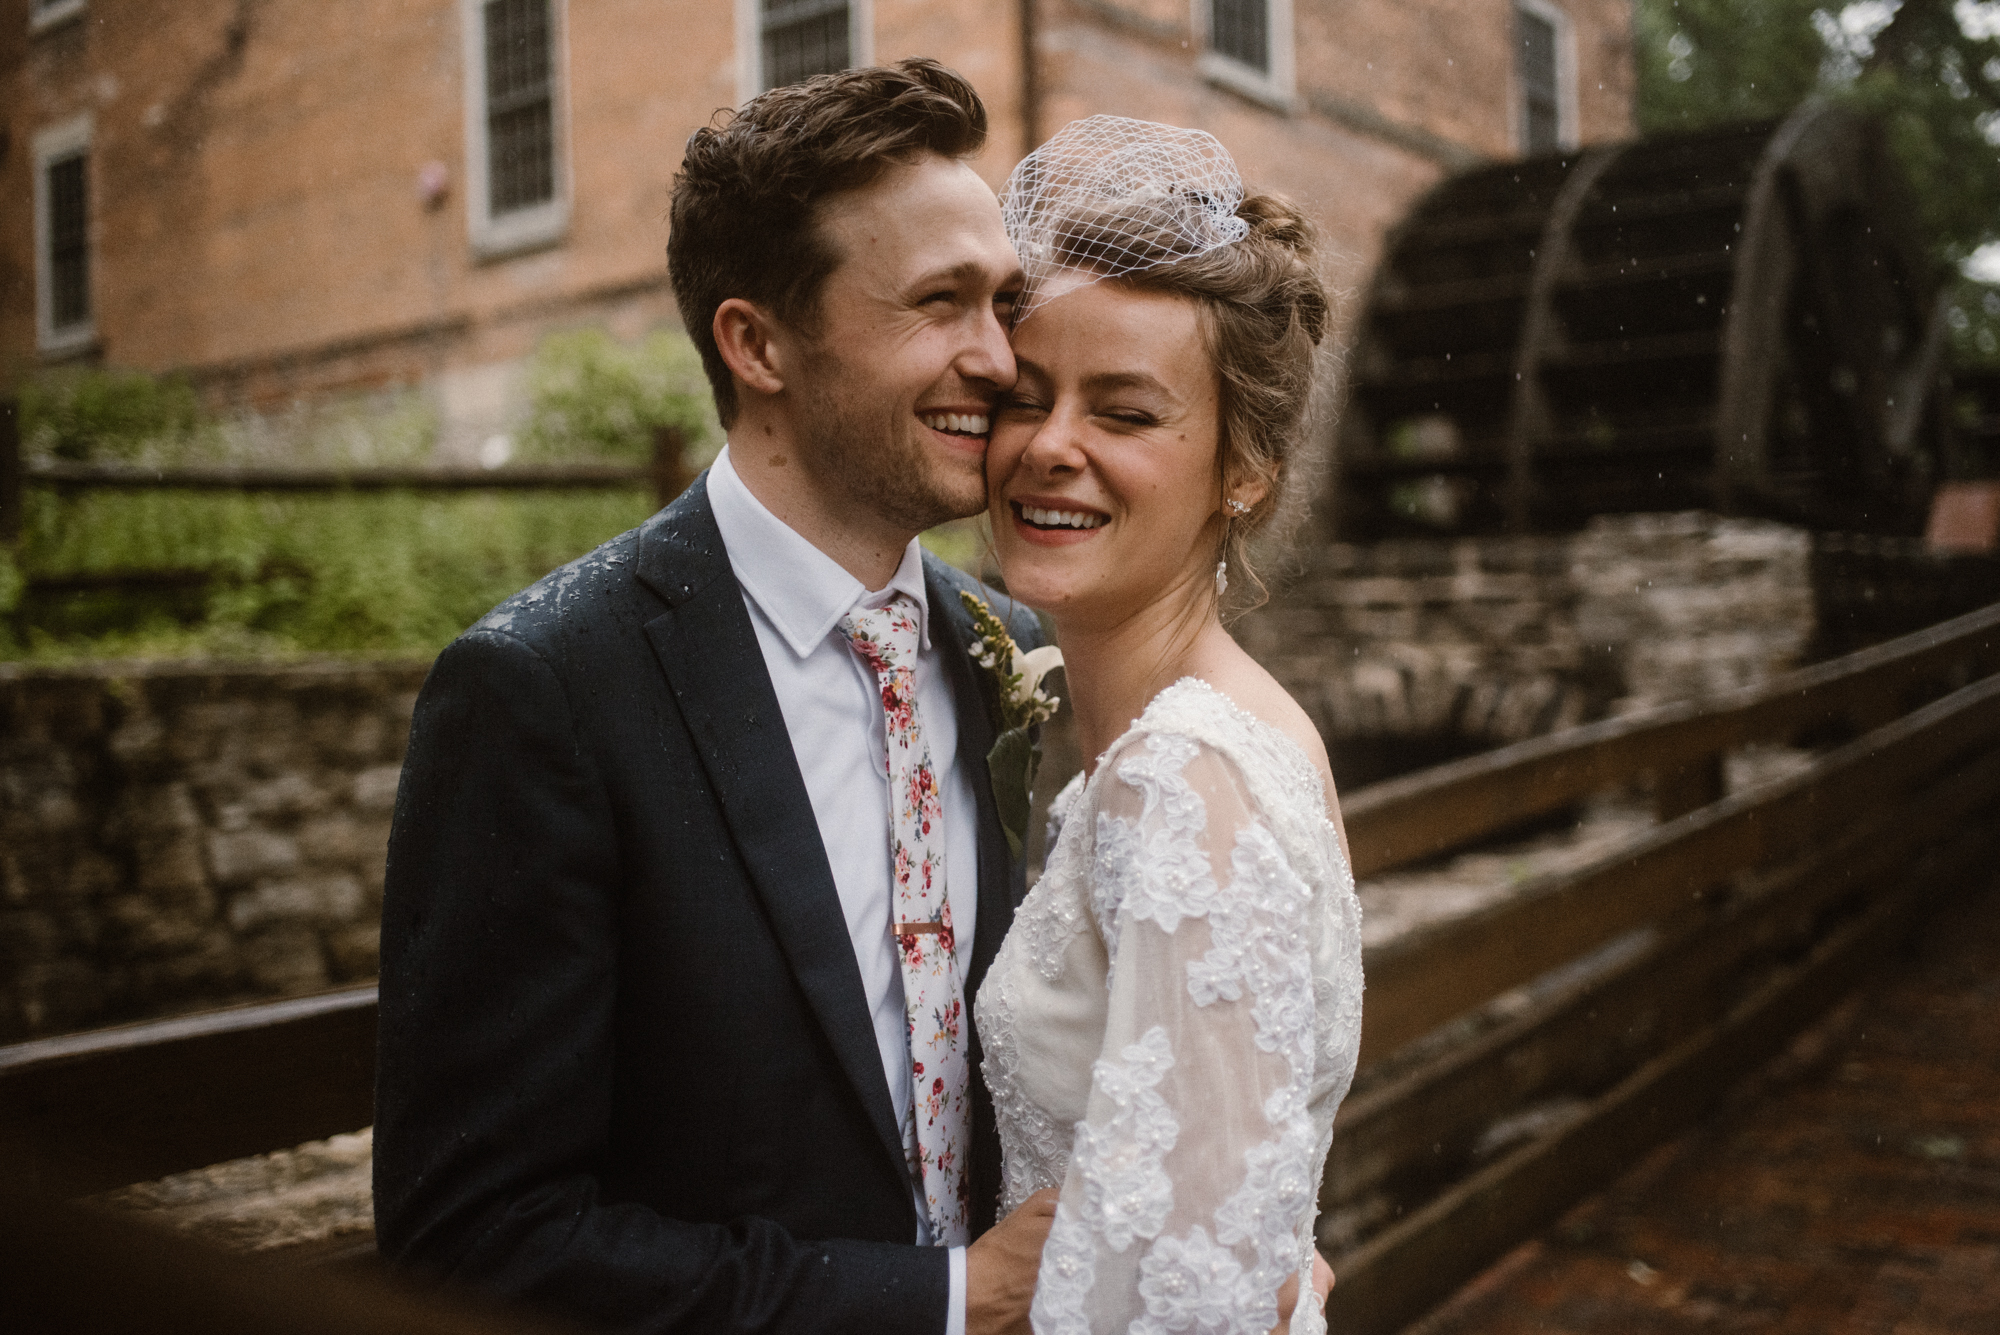 Mairi and Jude - Rainy Backyard Wedding - Intimate Wedding - Fun Reception Photos - Chicago Wedding Photographer - Catholic Wedding - White Sails Creative - Virginia Backyard Wedding Photographer_81.jpg